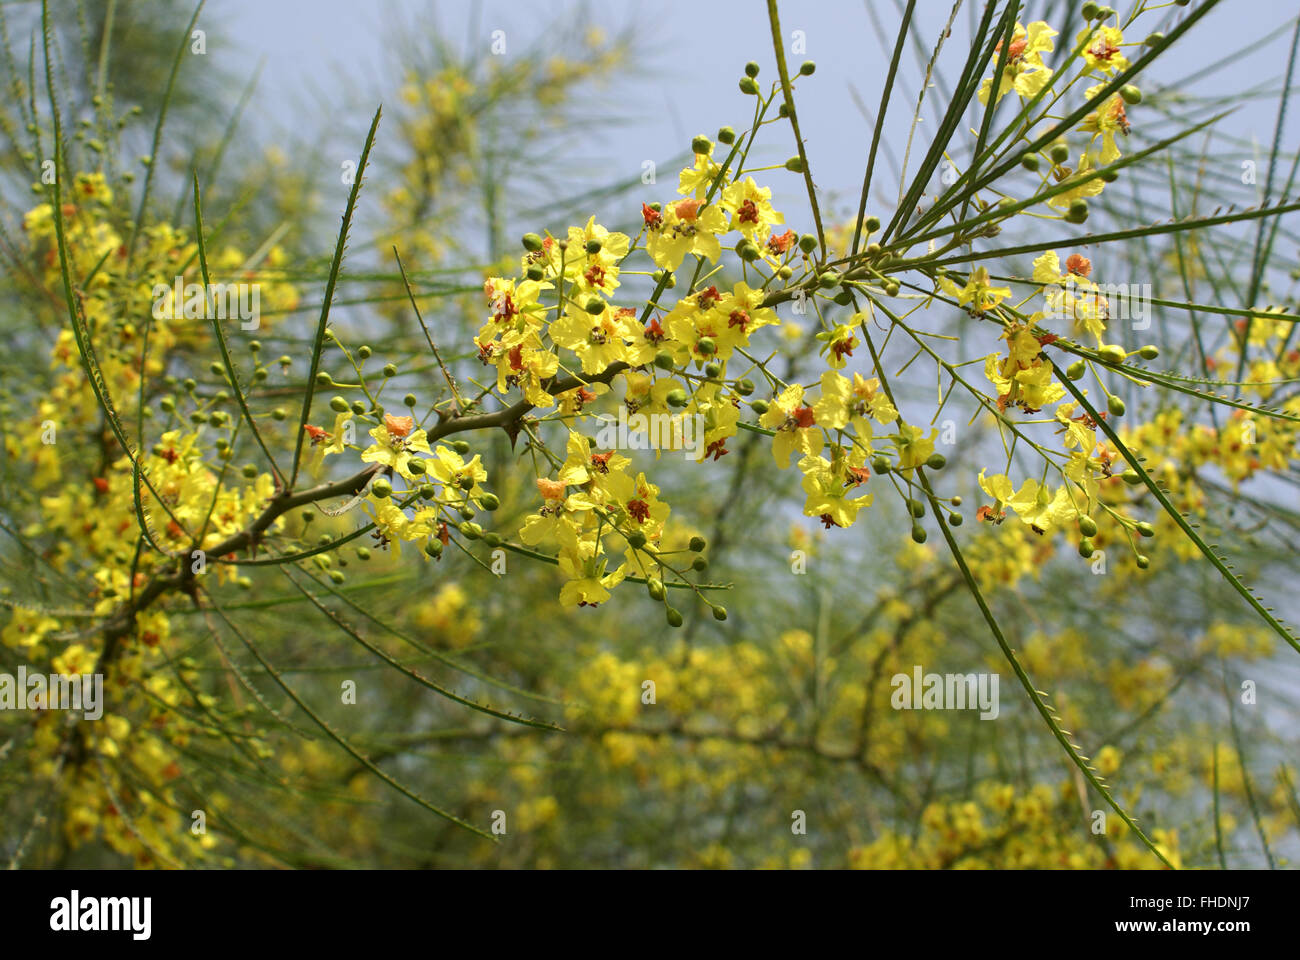 Yellow Flowers Palo Verde Tree Stock Photos Yellow Flowers Palo